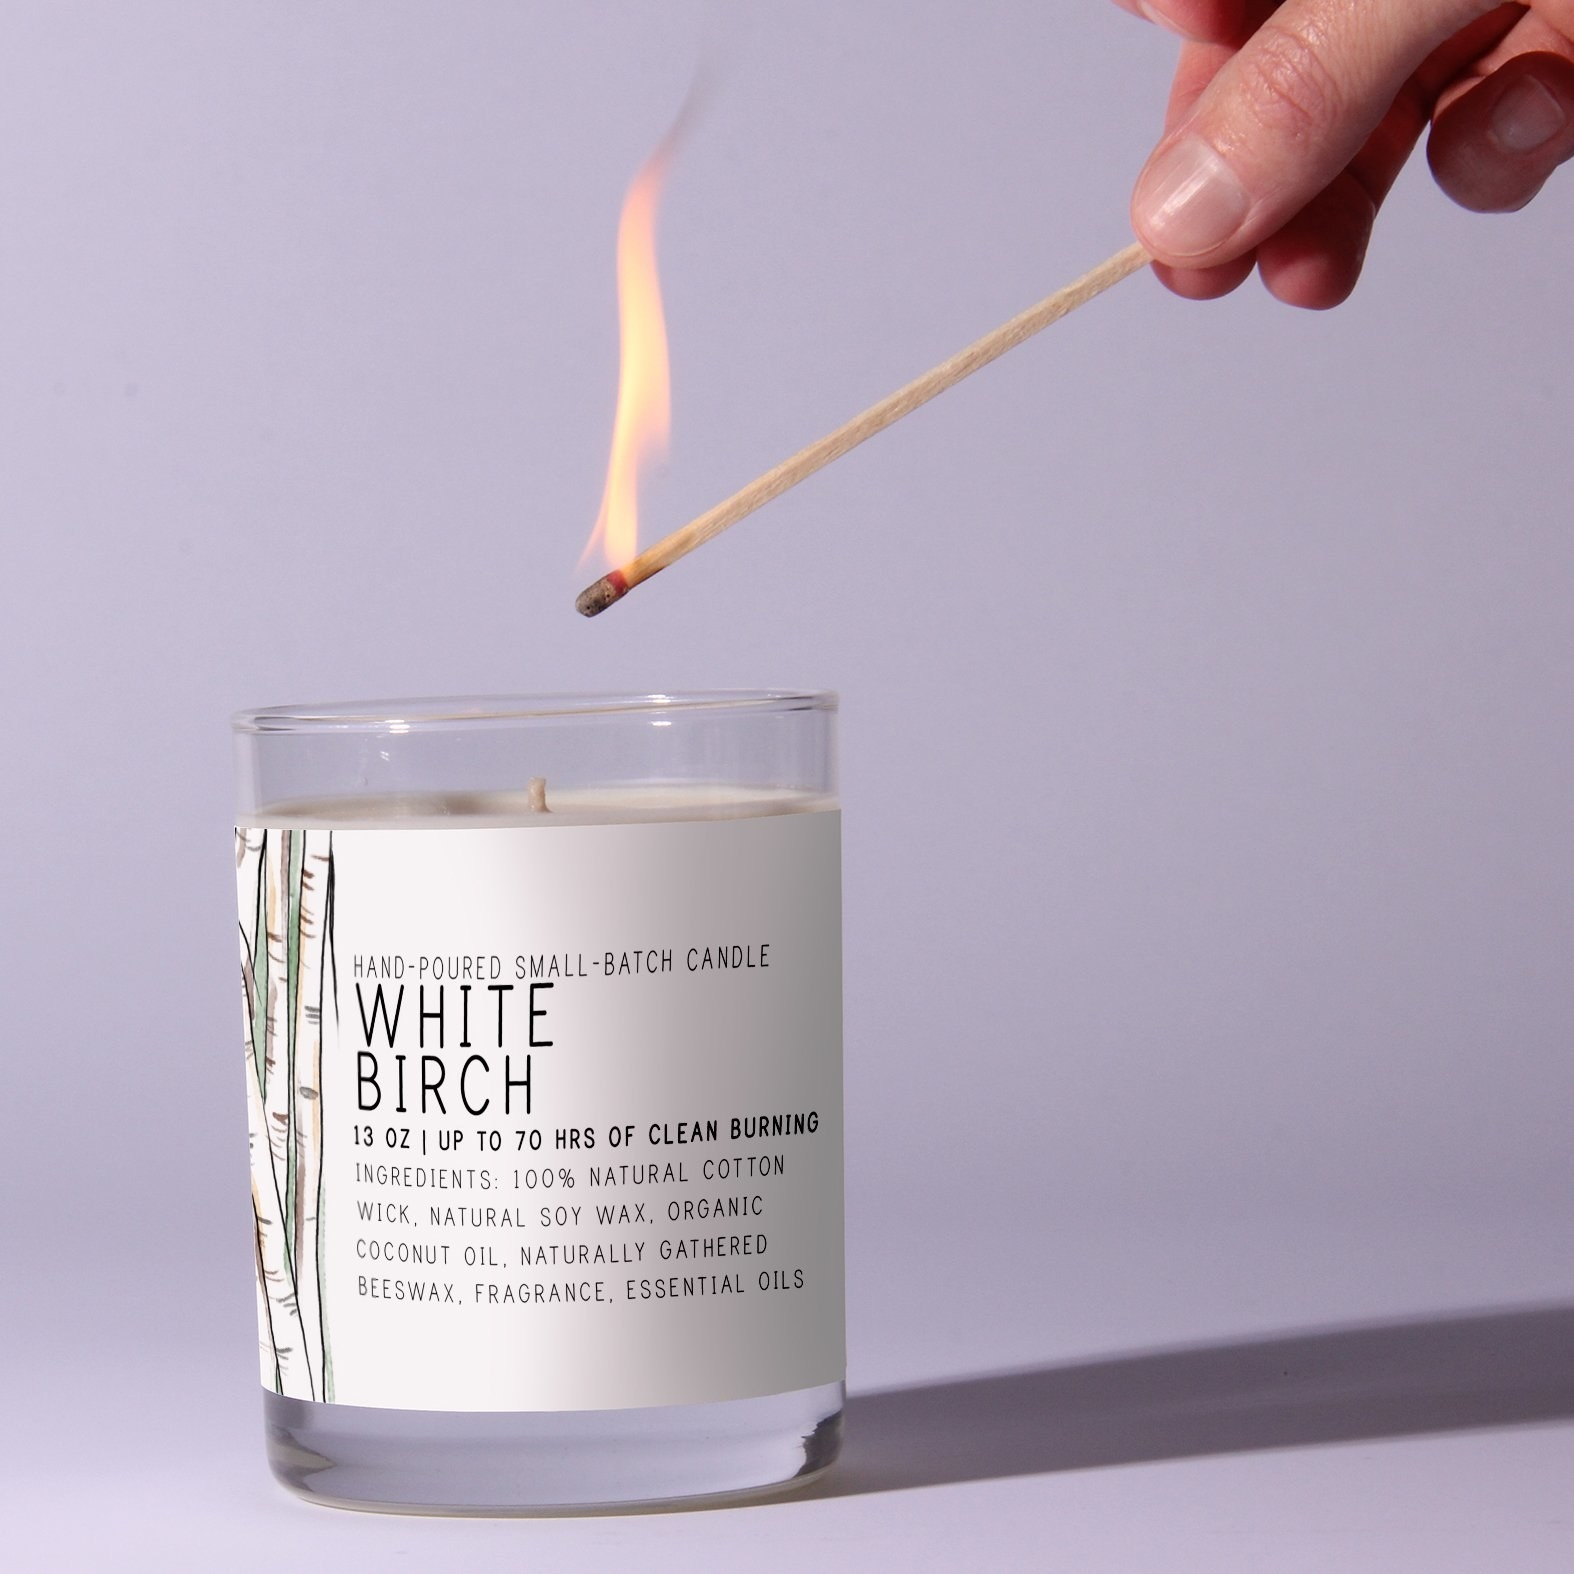 a model lighting a candle with a white label and birch trees on it